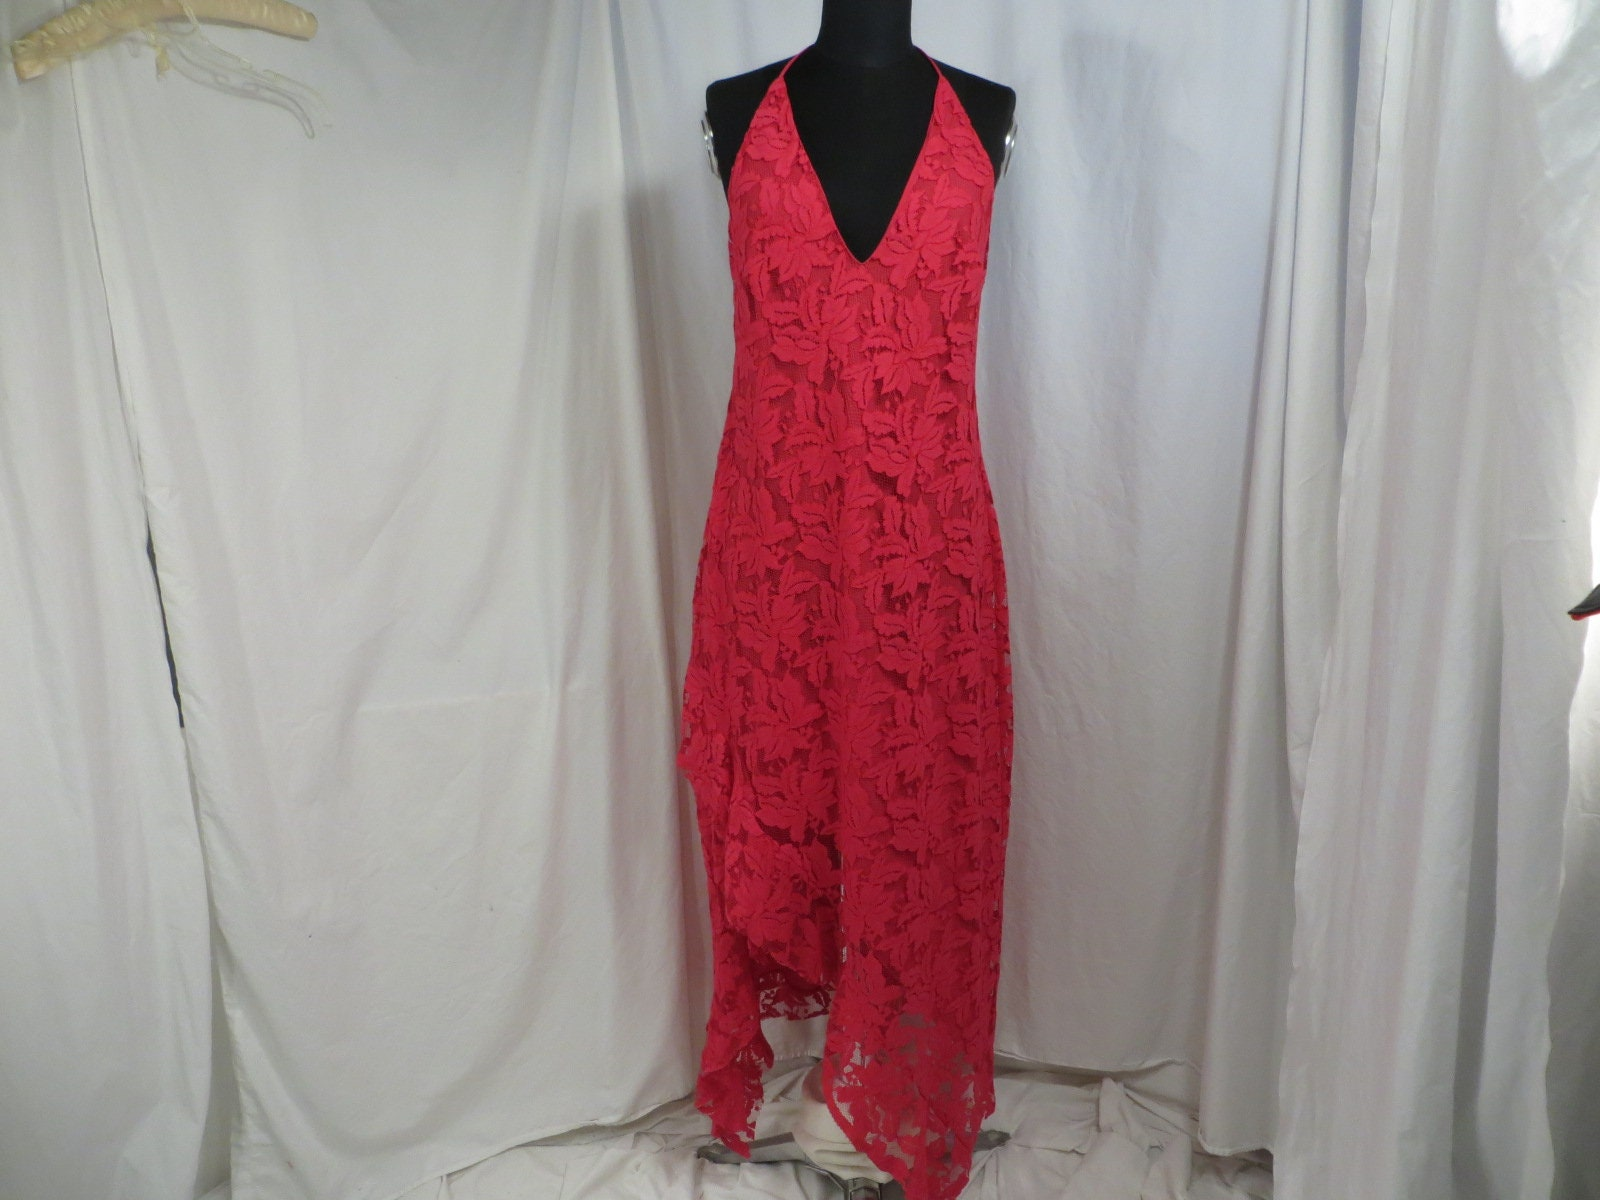 Vintage Scarf Styles -1920s to 1960s Hot Pink Lace Vintage 90s Feminine Long Dress Made in Australia Party Evening Scarf Hem Plunge Neckline Colorful Quality Prom $0.00 AT vintagedancer.com